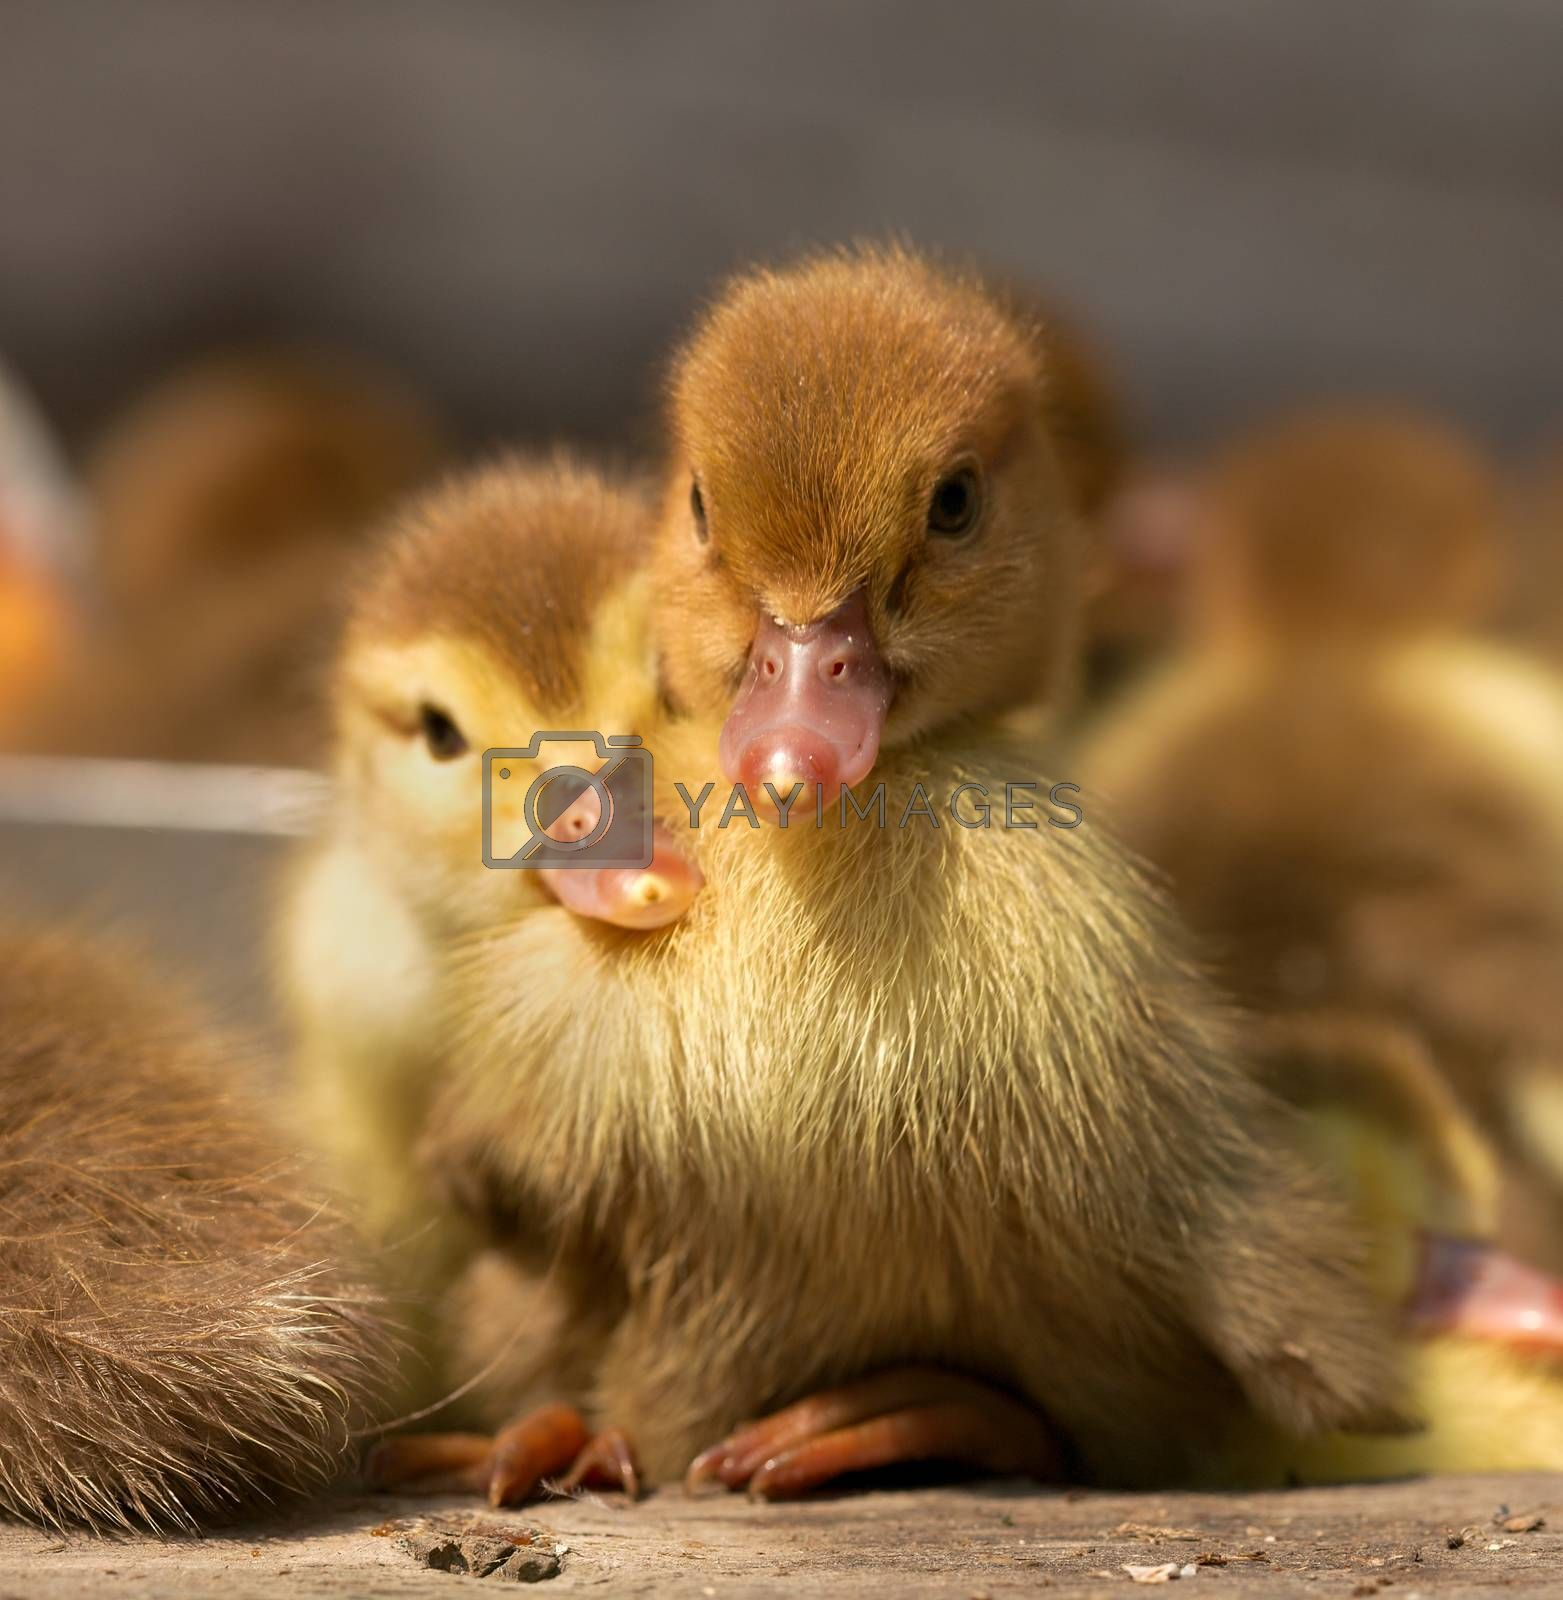 musk duck ducklings closeup on a poultry yard